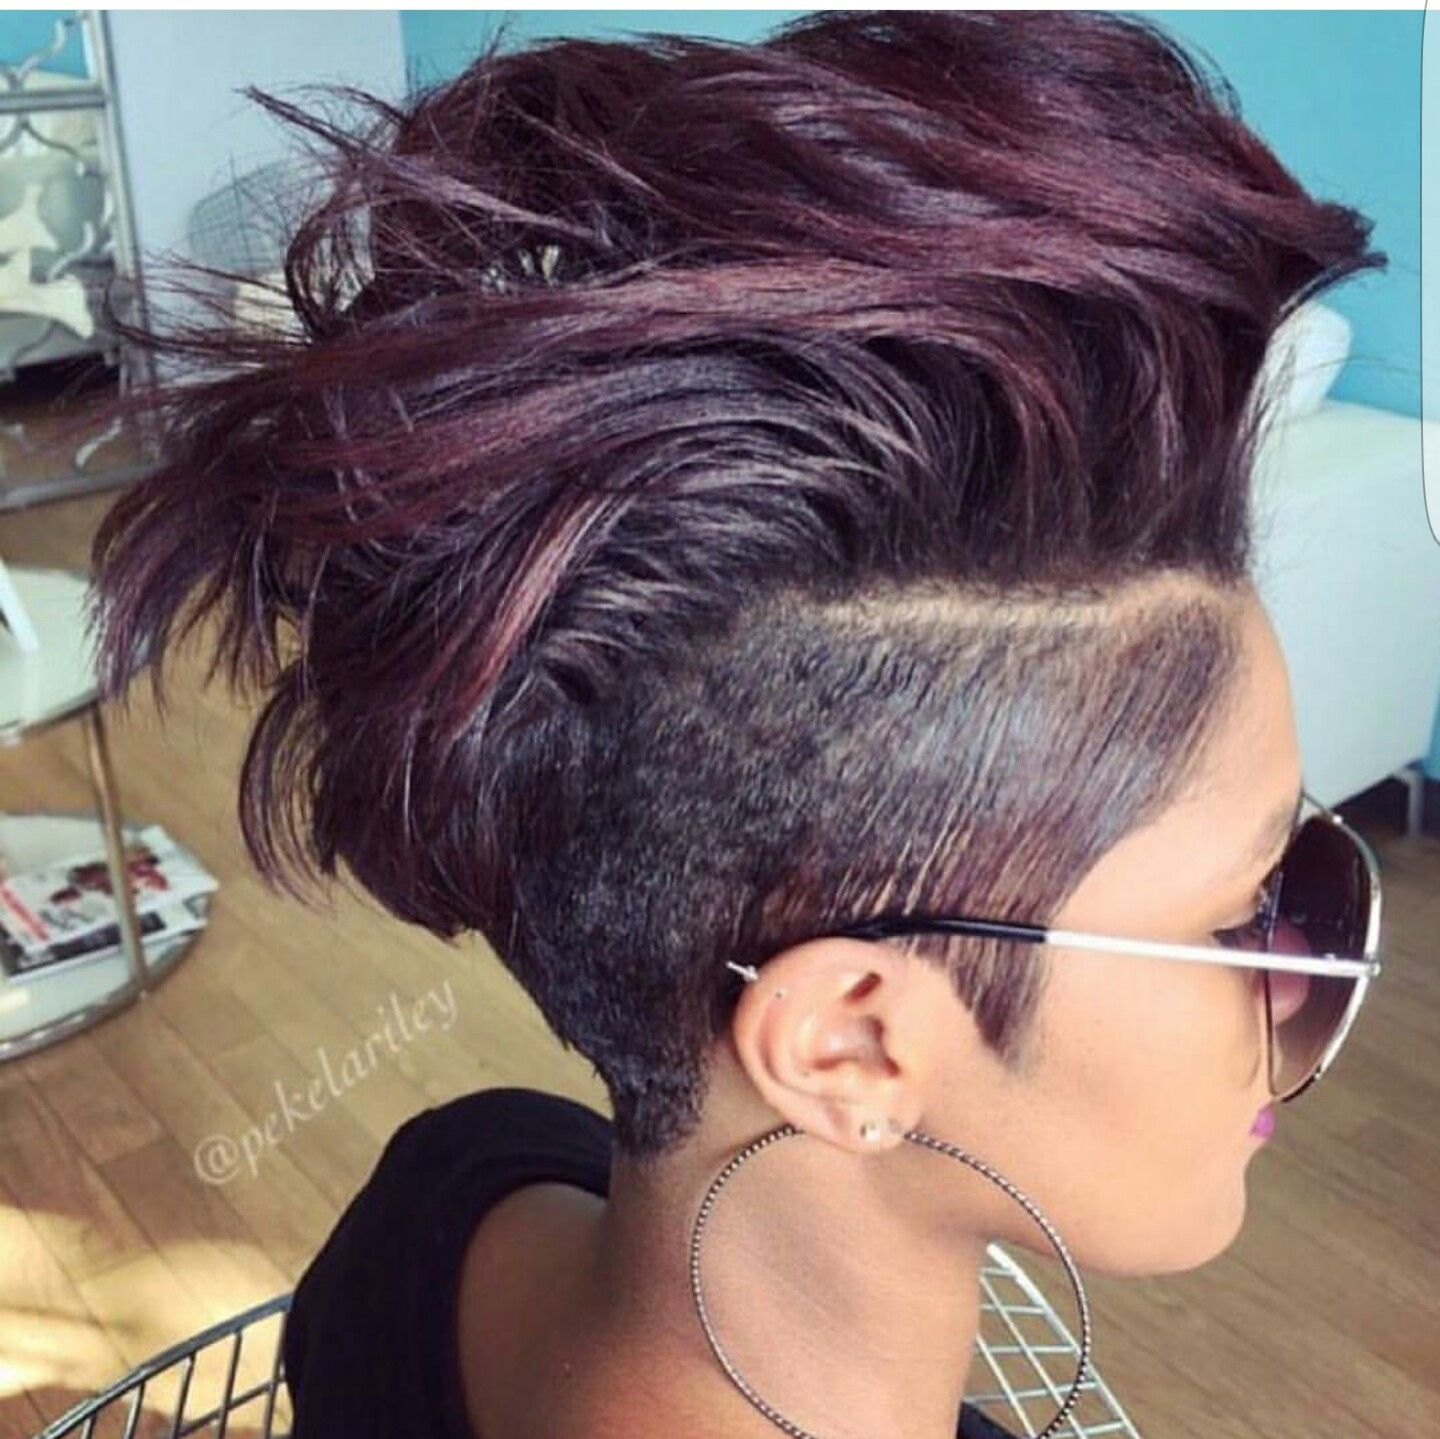 The cutlife pelo corto pinterest hair style hair cuts and